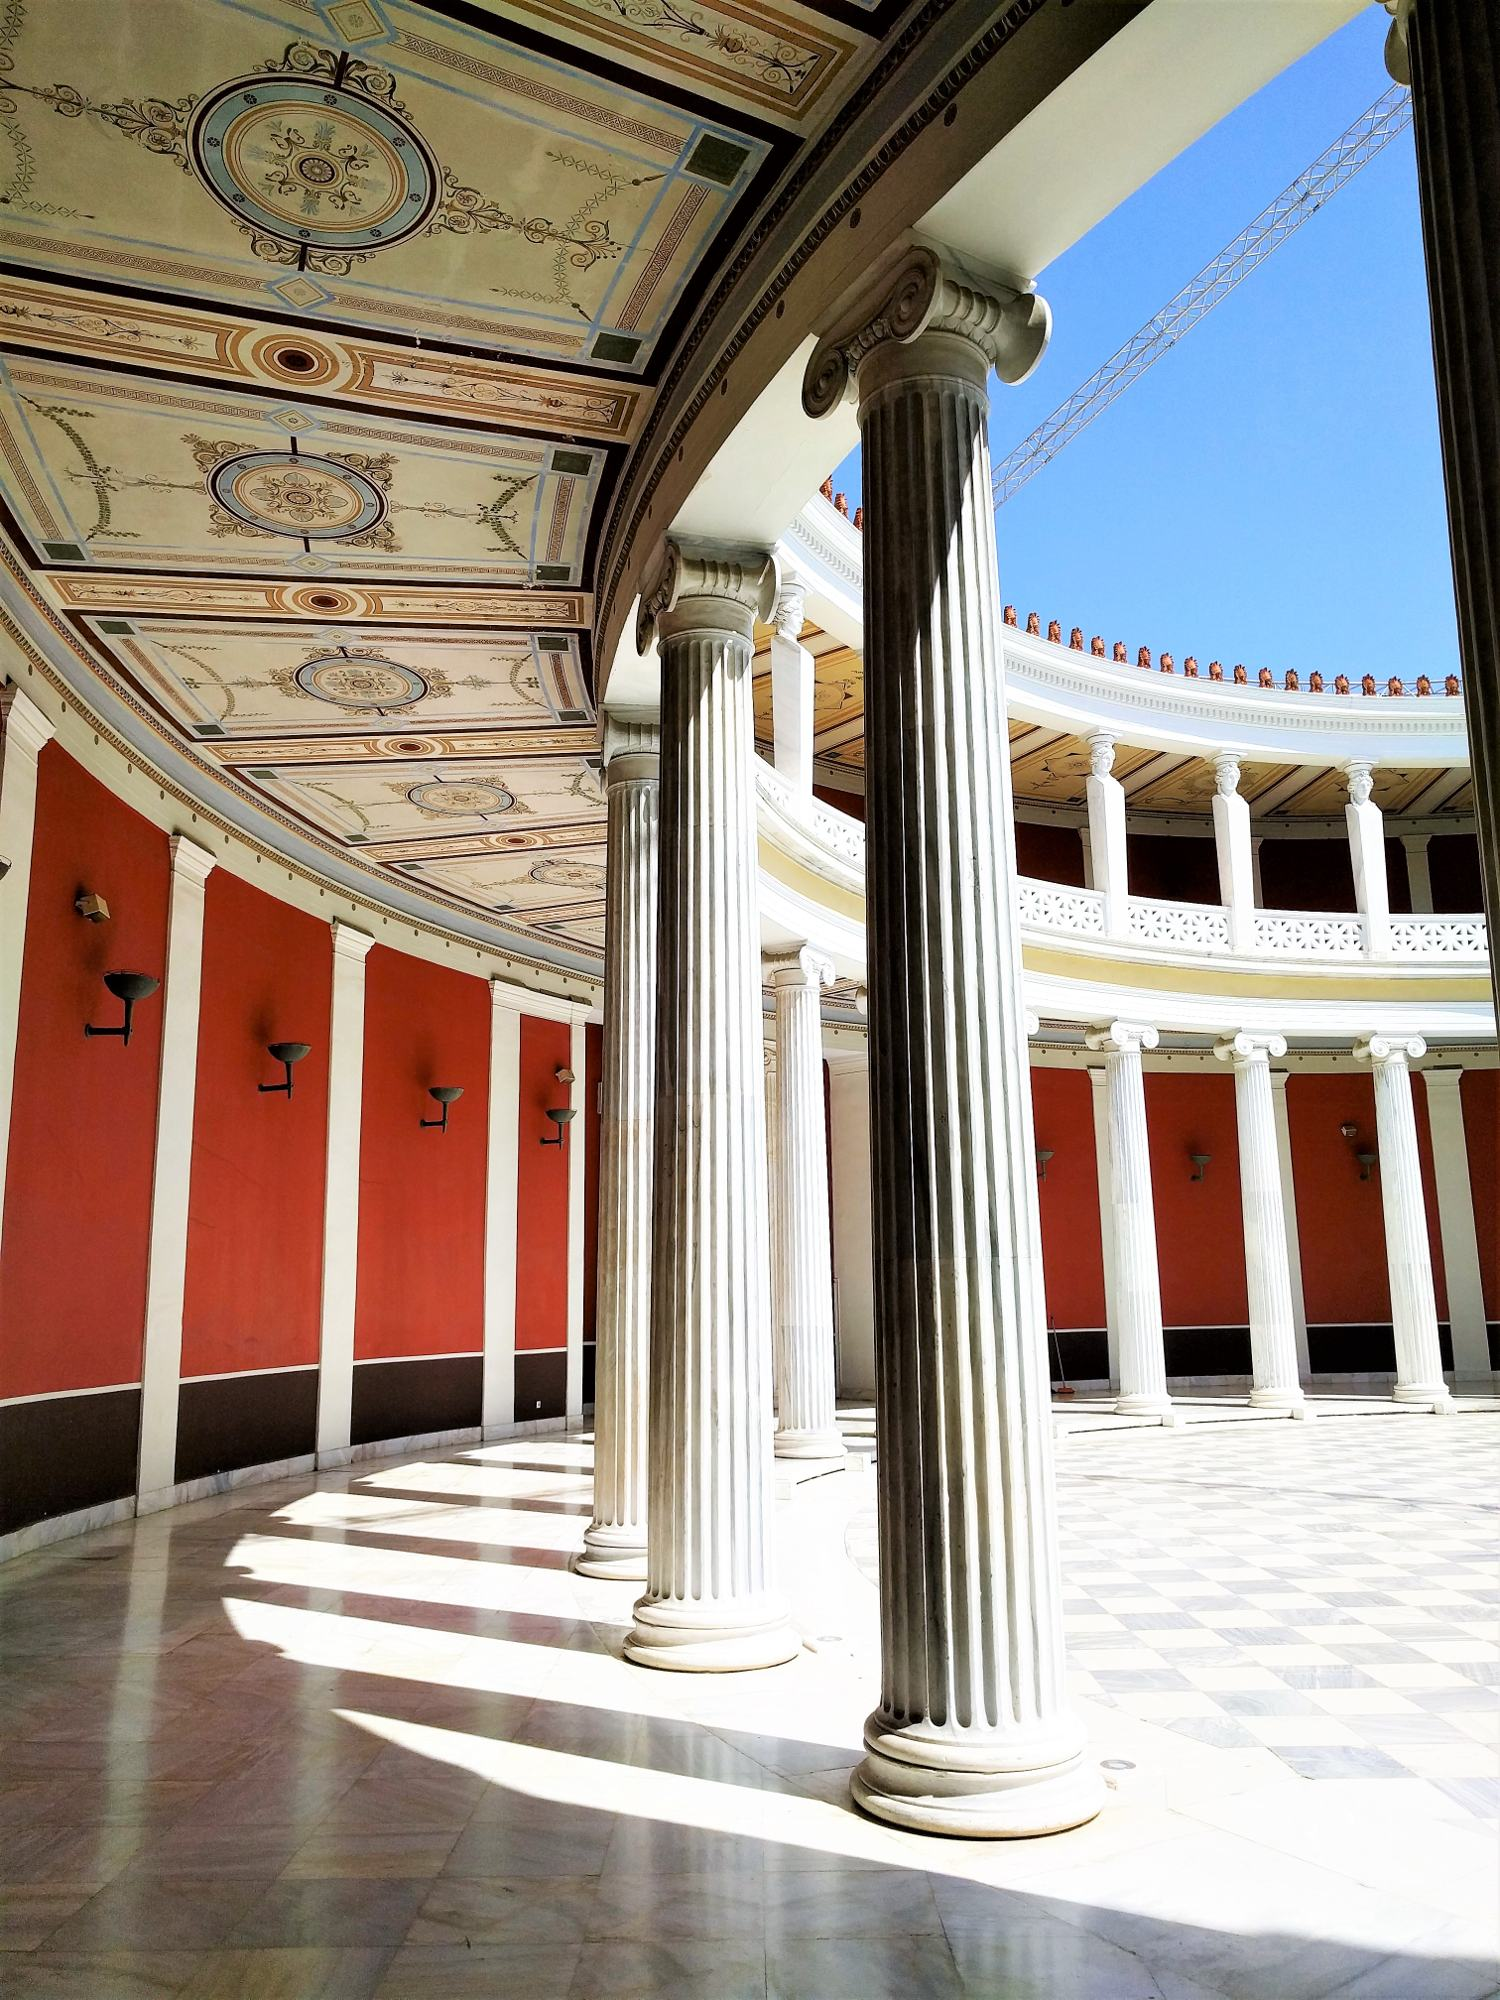 The Zappeion in the National Gardens of Athens is currently being used as a Conference and Exhibition Center for both public and private purposes. Source: Truevoyagers